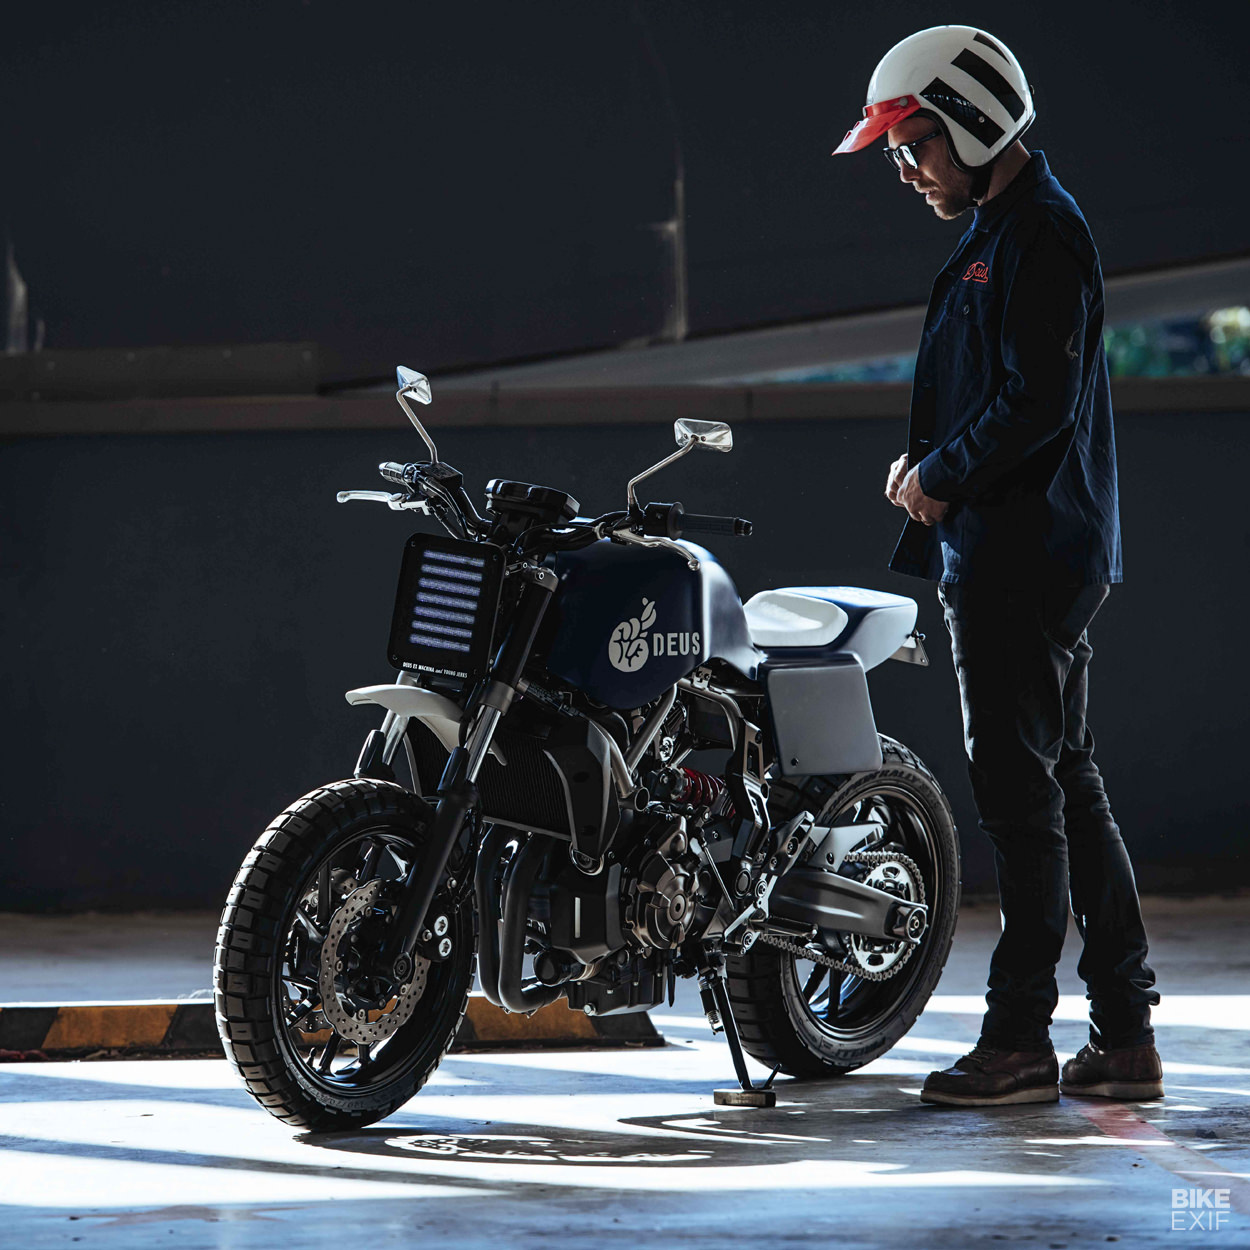 Builder Jeremy Tagand of Deus, with his custom Yamaha MT-07 'The Young Jerk'